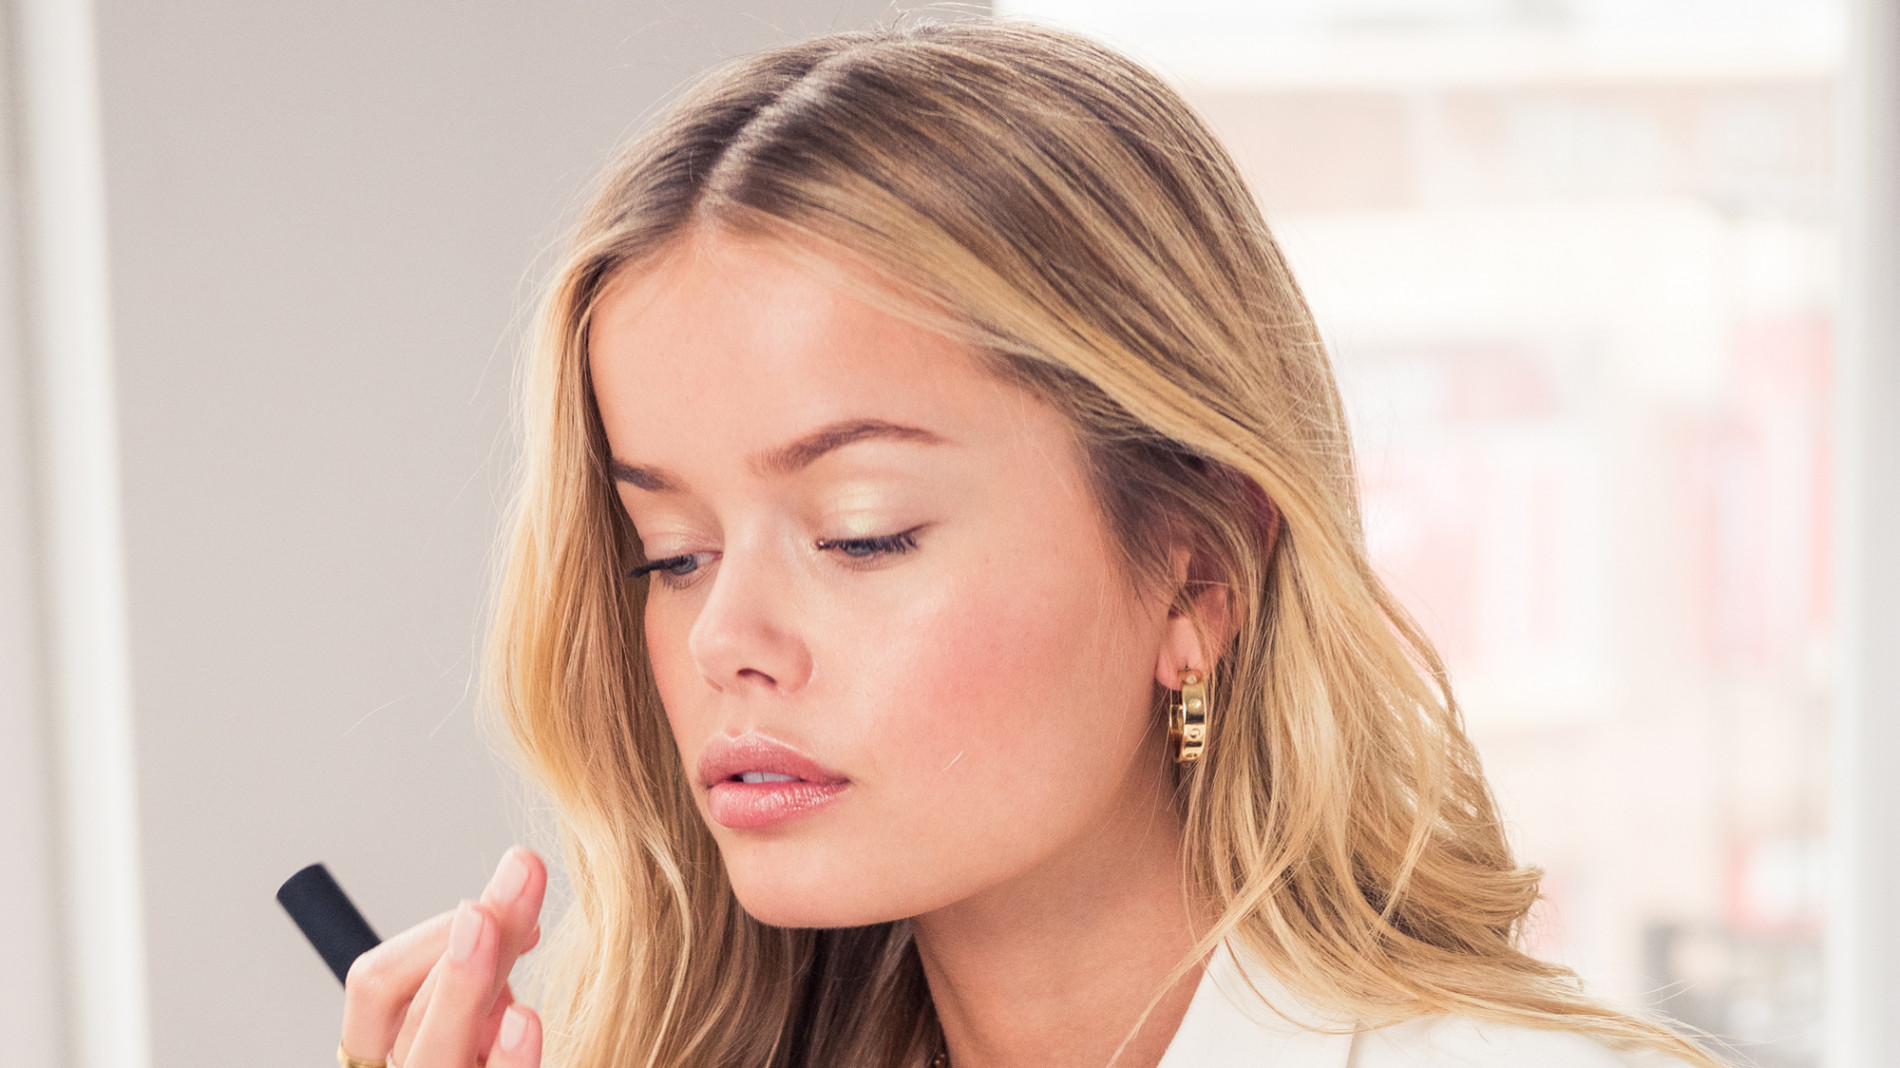 THE 6 BEST PRODUCTS FOR A DEWY SUMMER LOOK - You can apply them all in under 5 minutes.